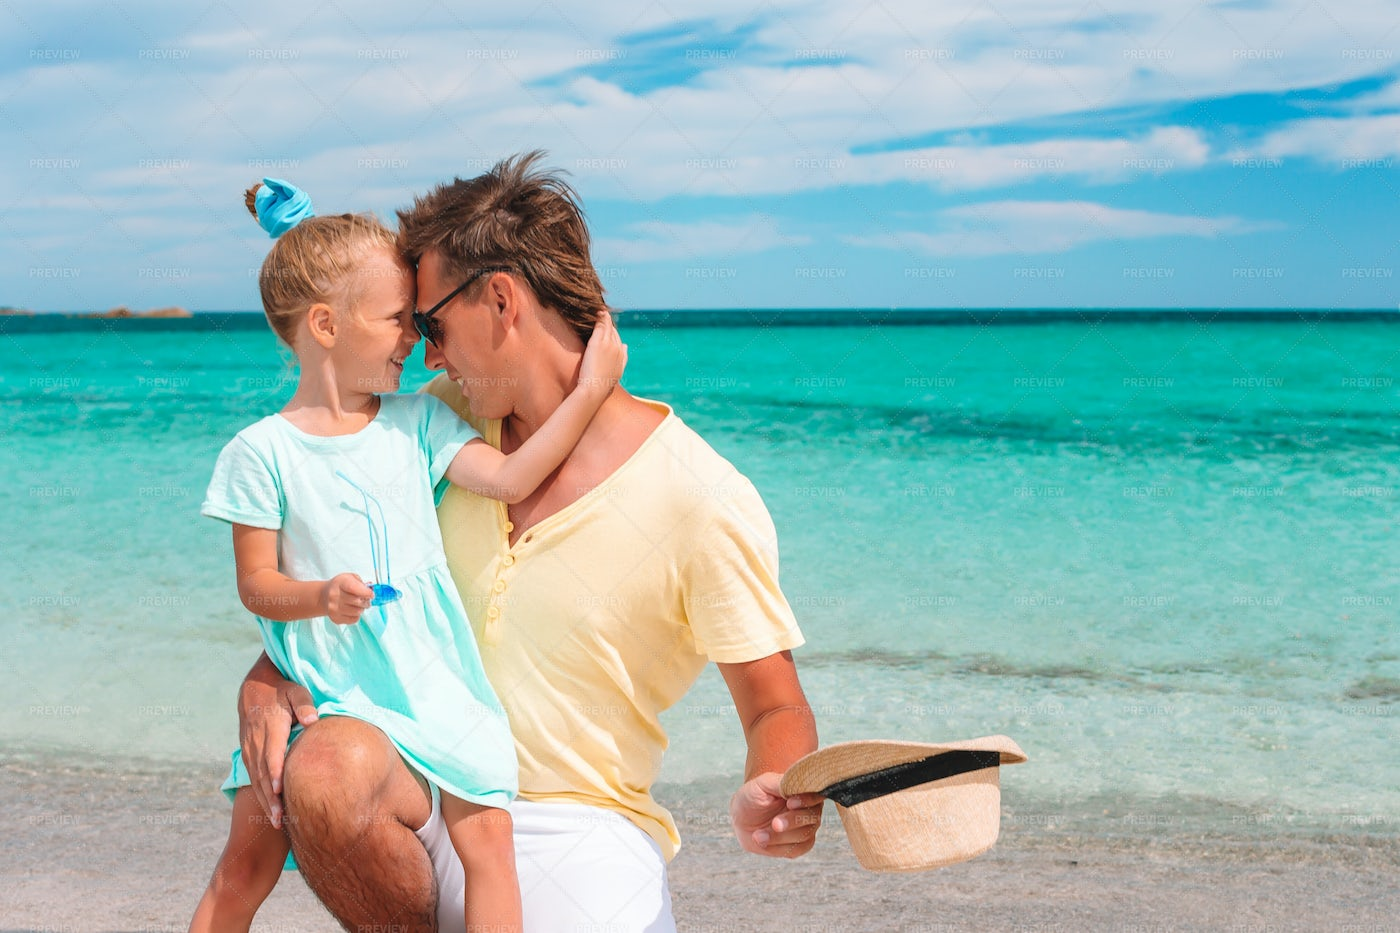 Affectionate Kid With Dad On Beach: Stock Photos